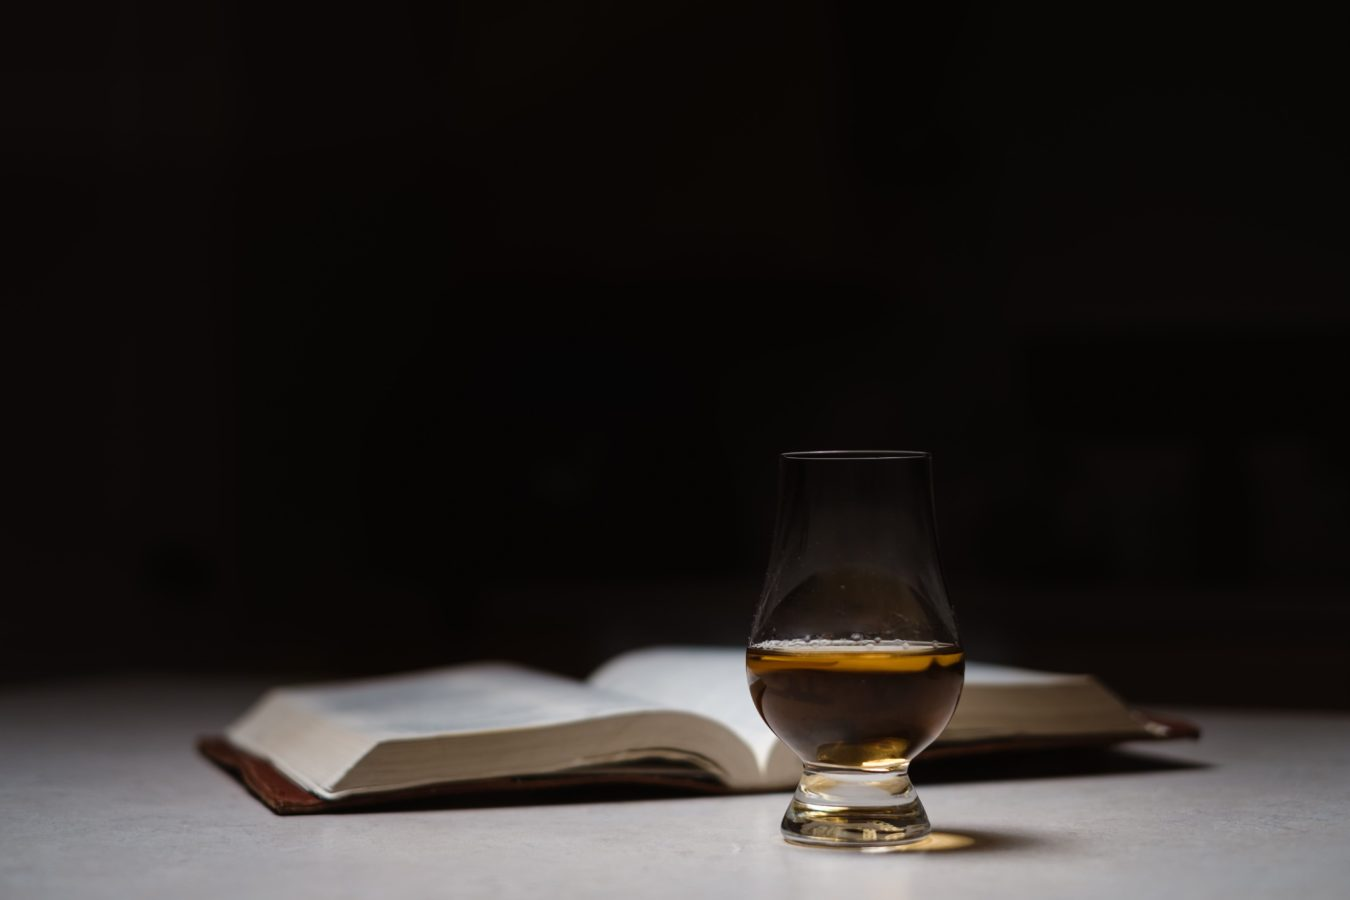 You should be investing in your next whisky instead of drinking it